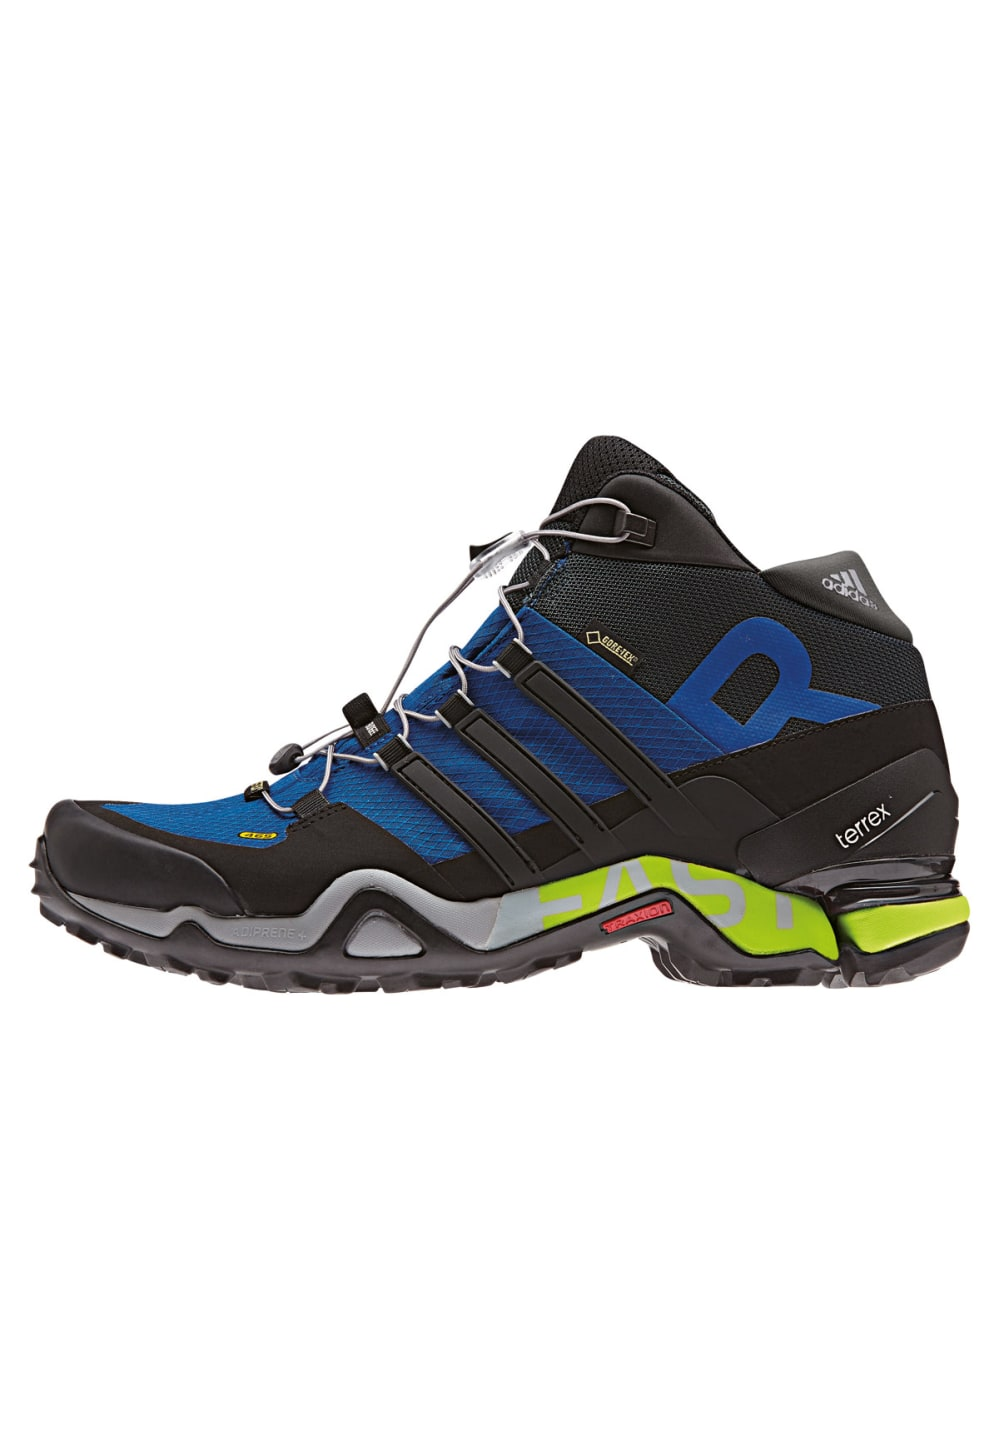 bfafcd75d76 adidas Terrex Fast R Mid GTX - Outdoor shoes for Men - Black